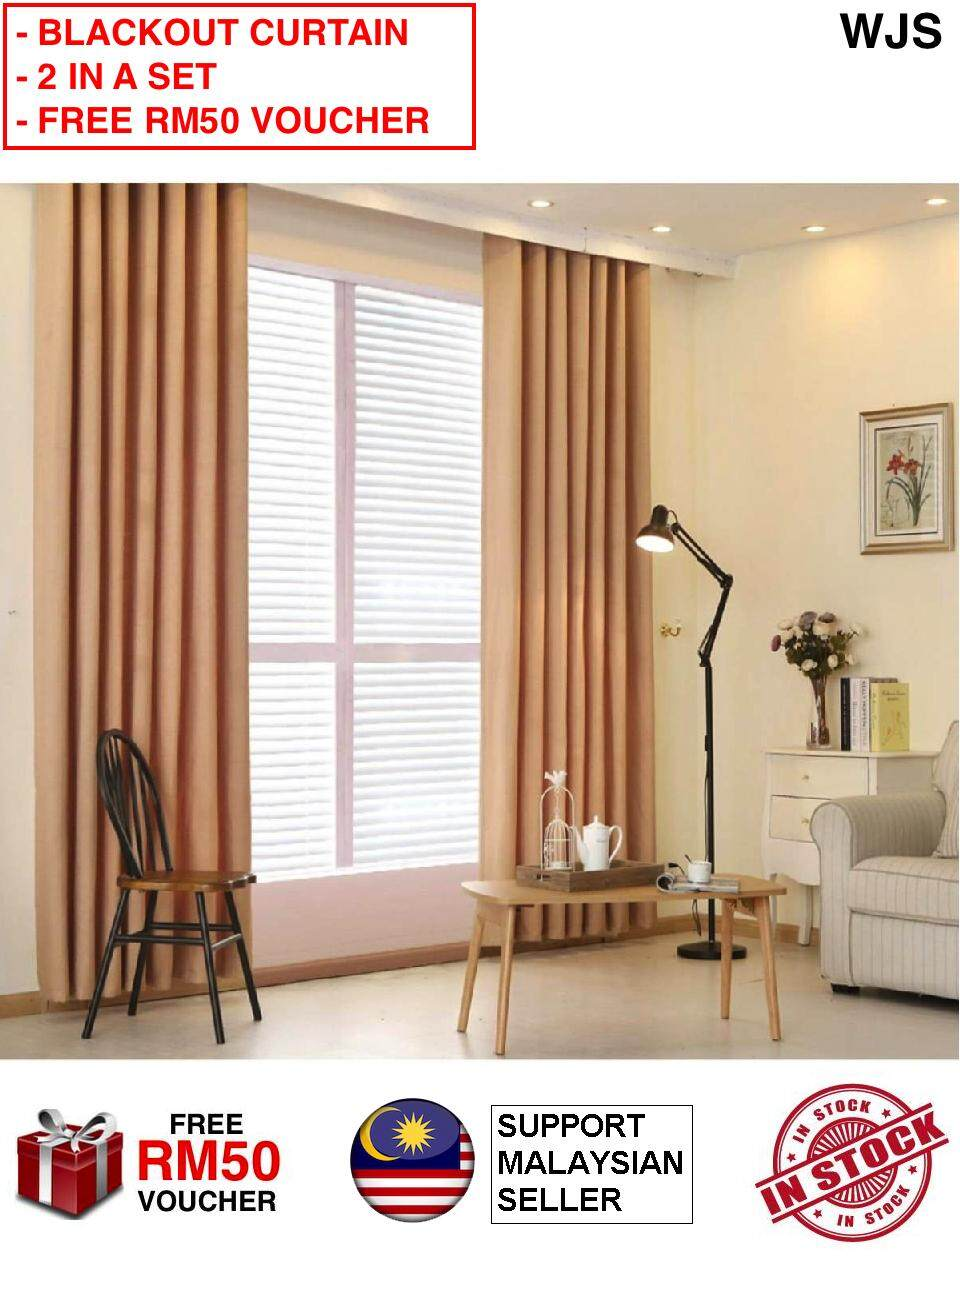 (2 PIECES IN A SET) WJS Blackout Plain Thermal Solid Window Curtain Modern Simple Elegant Design Simplicity With Eyelet Rod Ring BLUE BROWN COFFE PINK GREY GREEN 100cm x 210cm [FREE RM 50 VOUCHER]